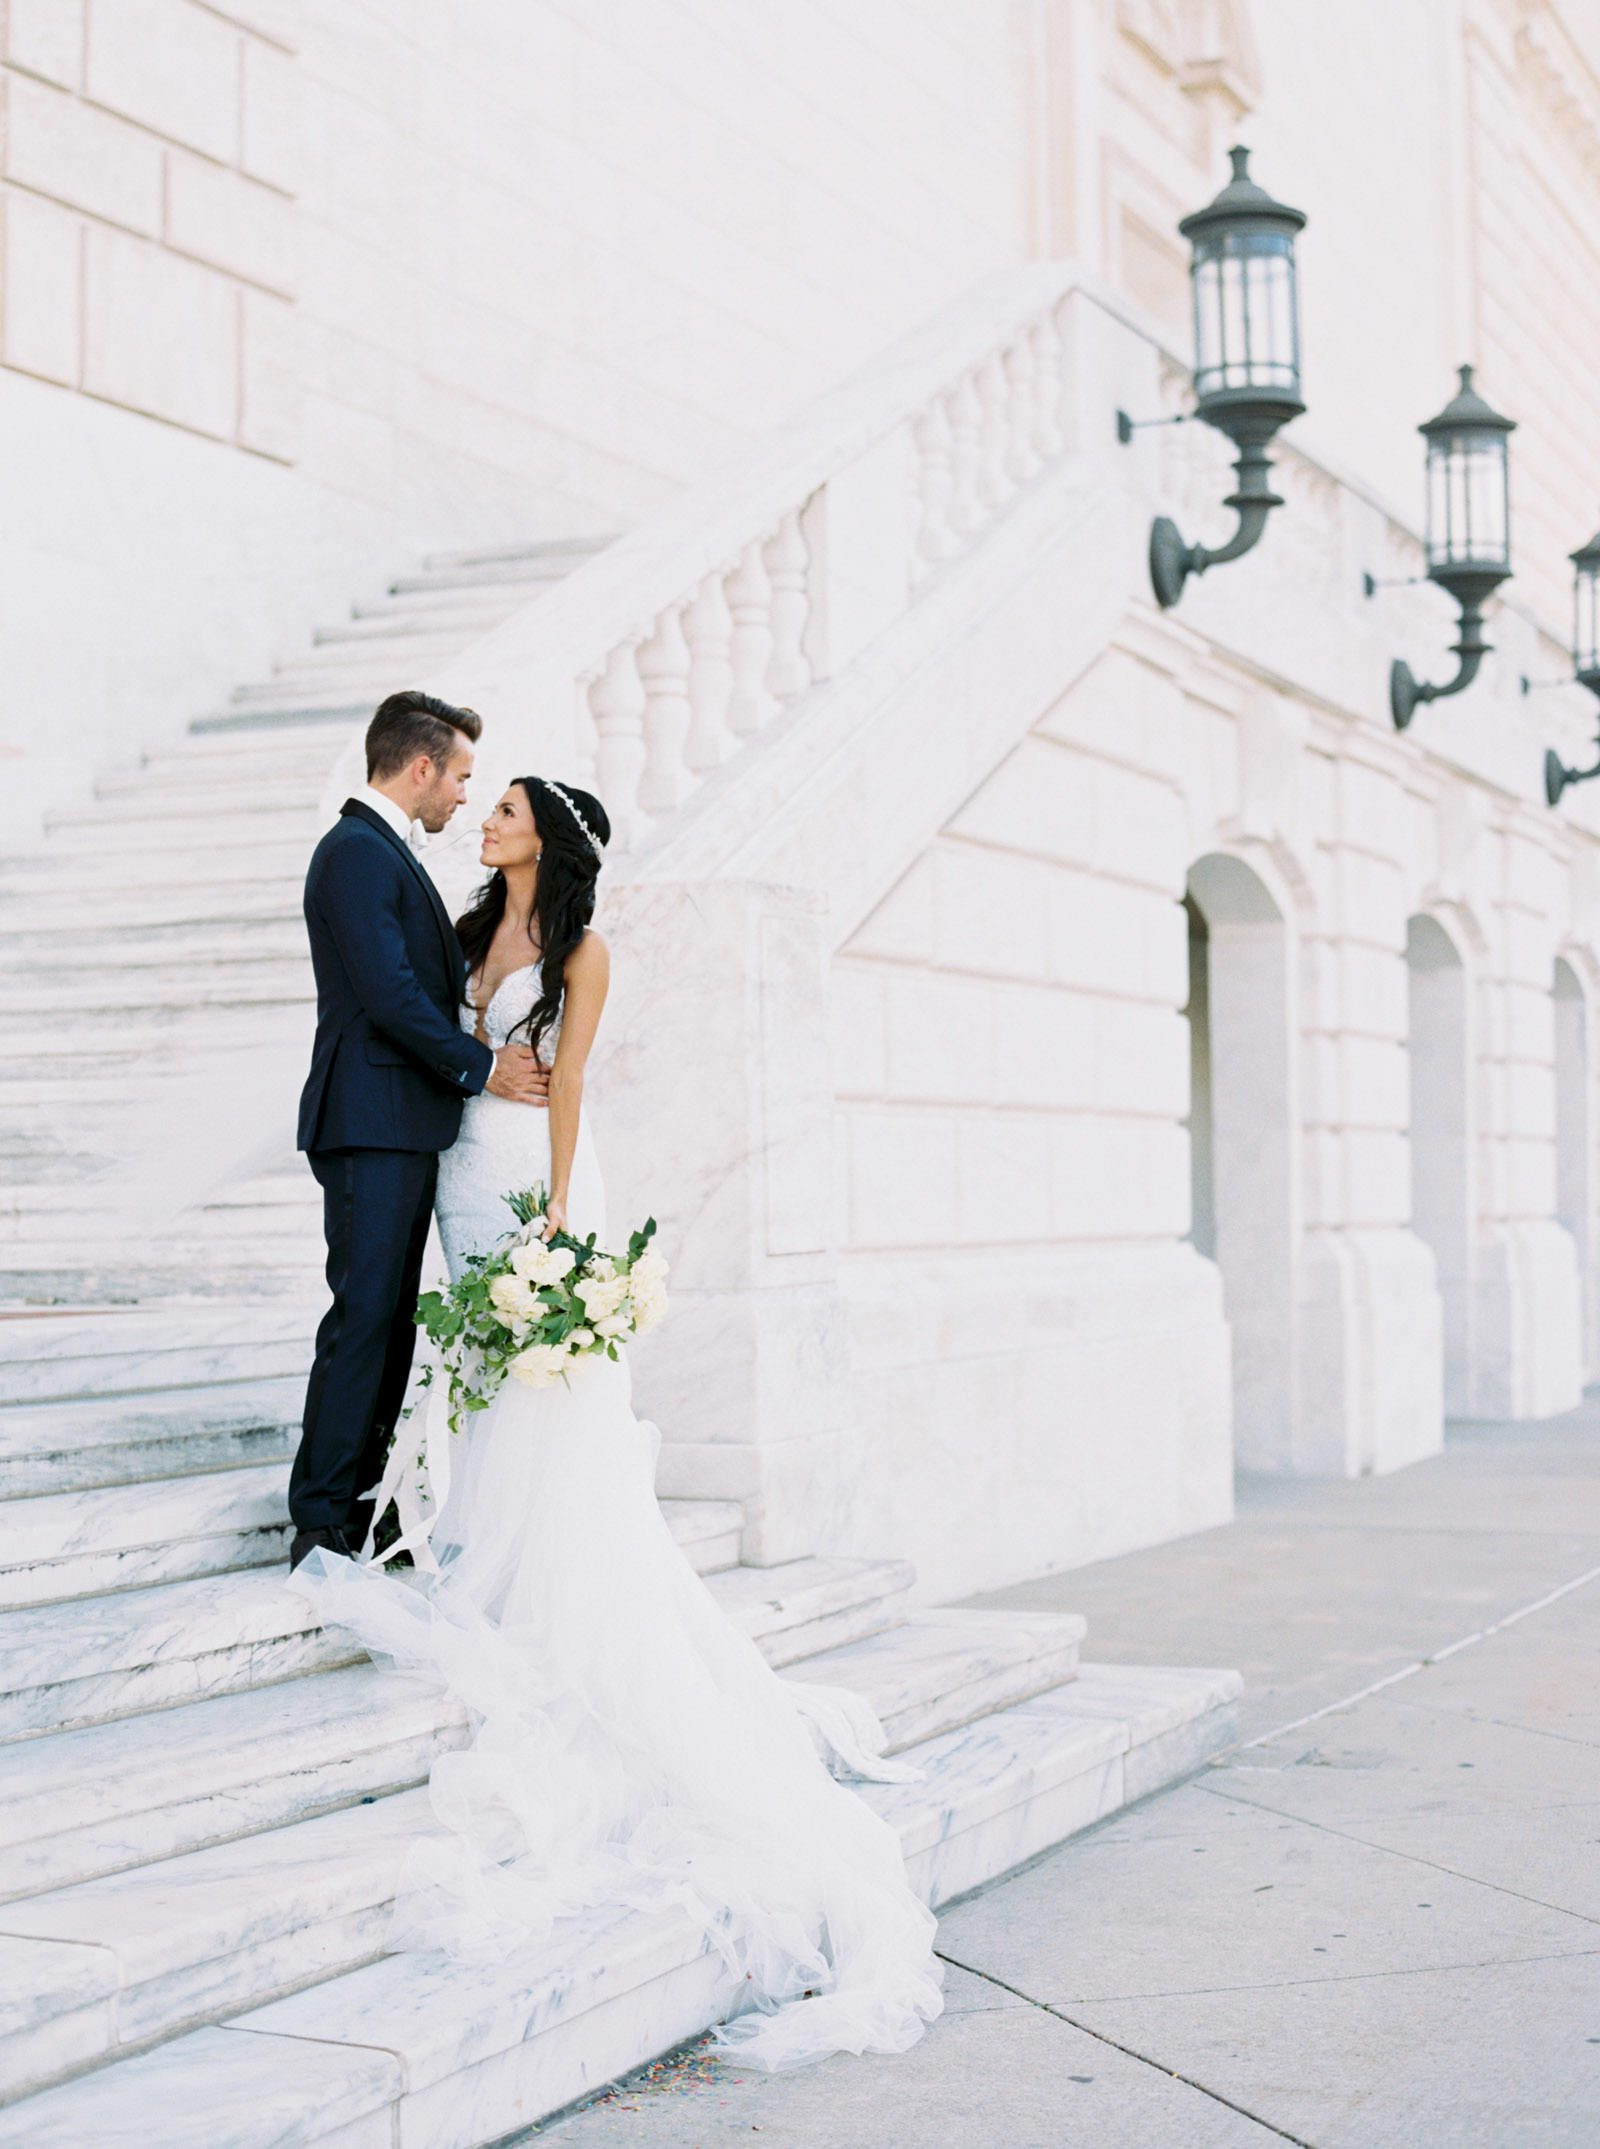 Wedding photos at the Detroit institute of arts